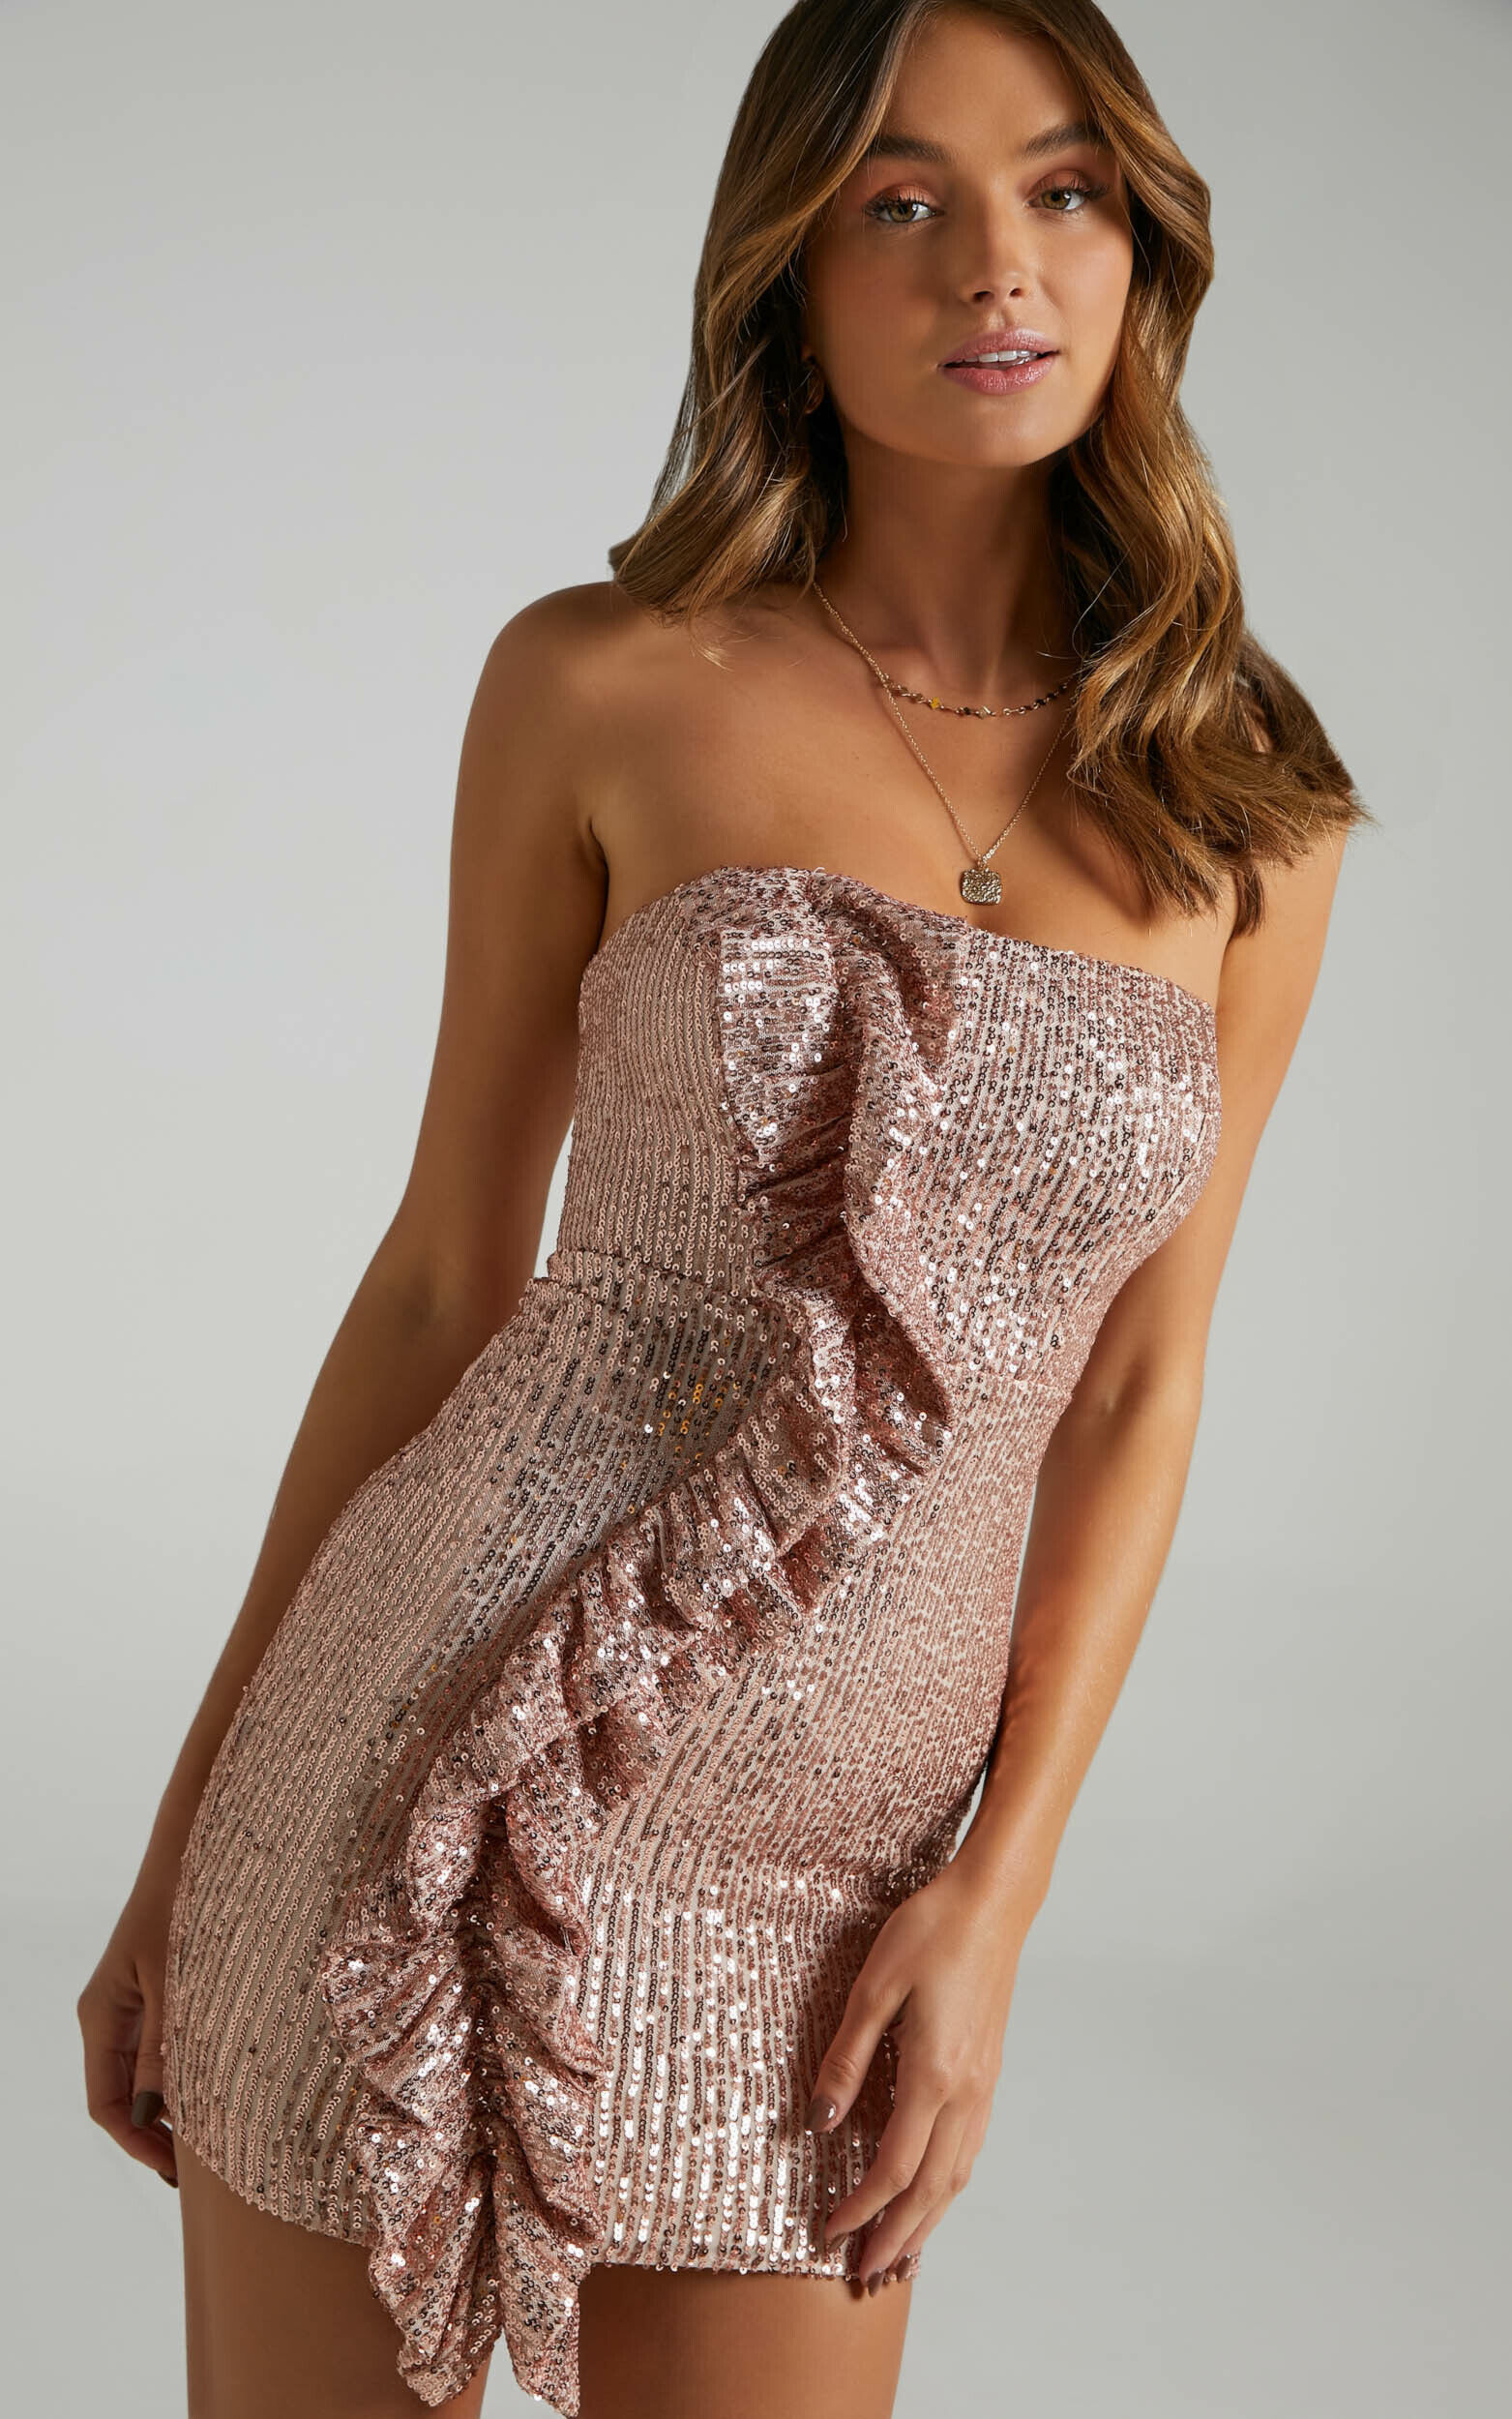 Amile Strapless Ruffle Mini Dress in Bronze Sequin - 06, GLD1, super-hi-res image number null